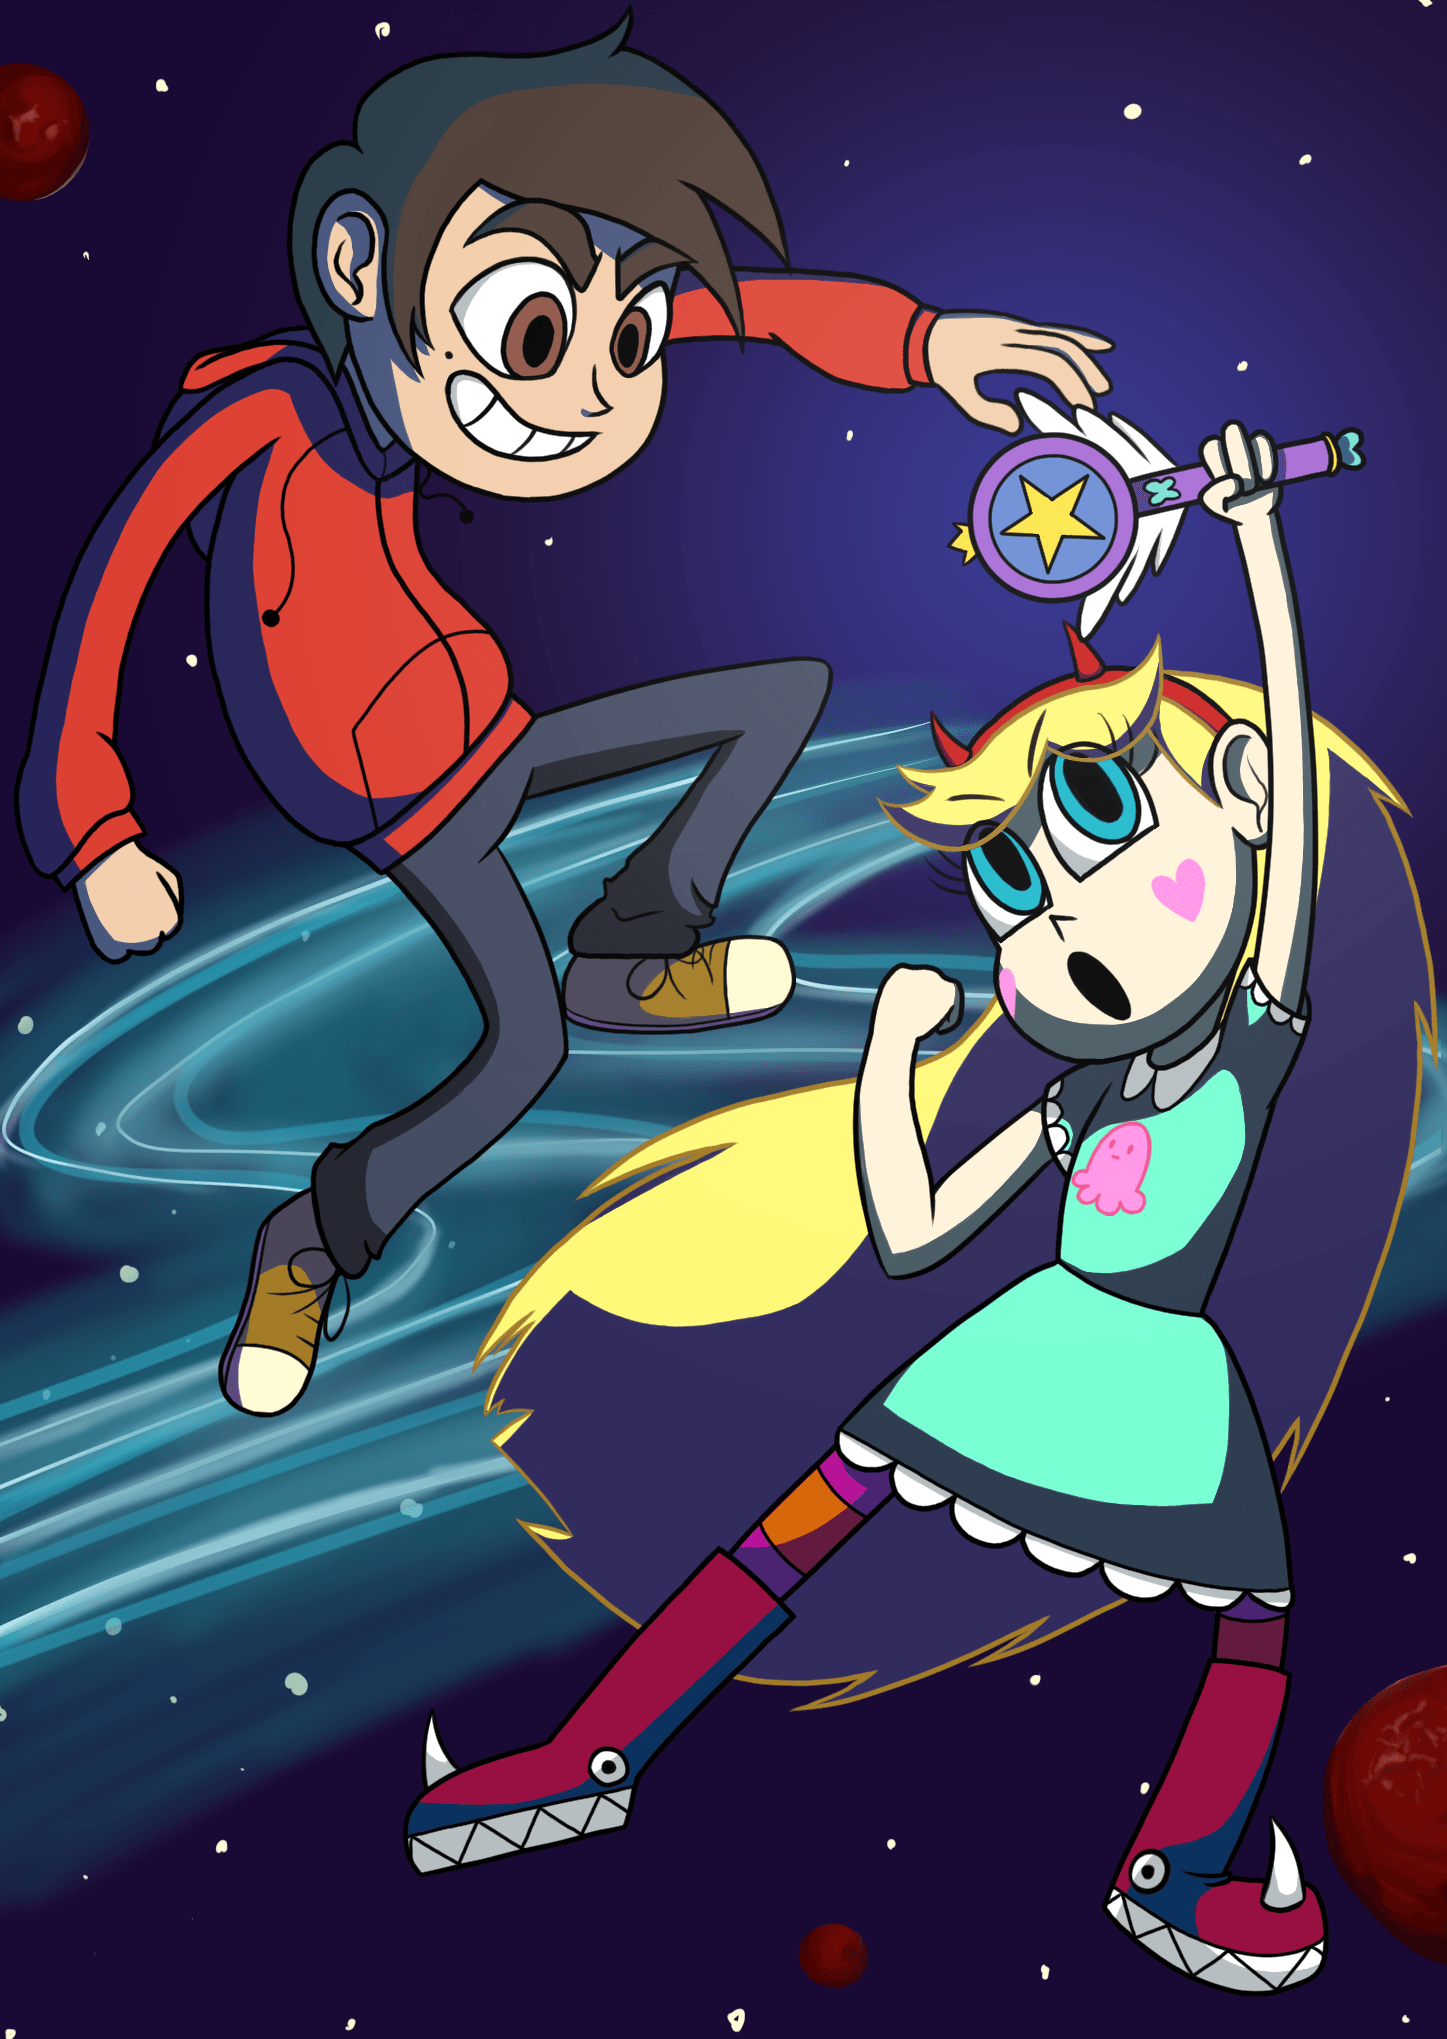 Star vs the Forces of Evil by hakutooon on DeviantArt